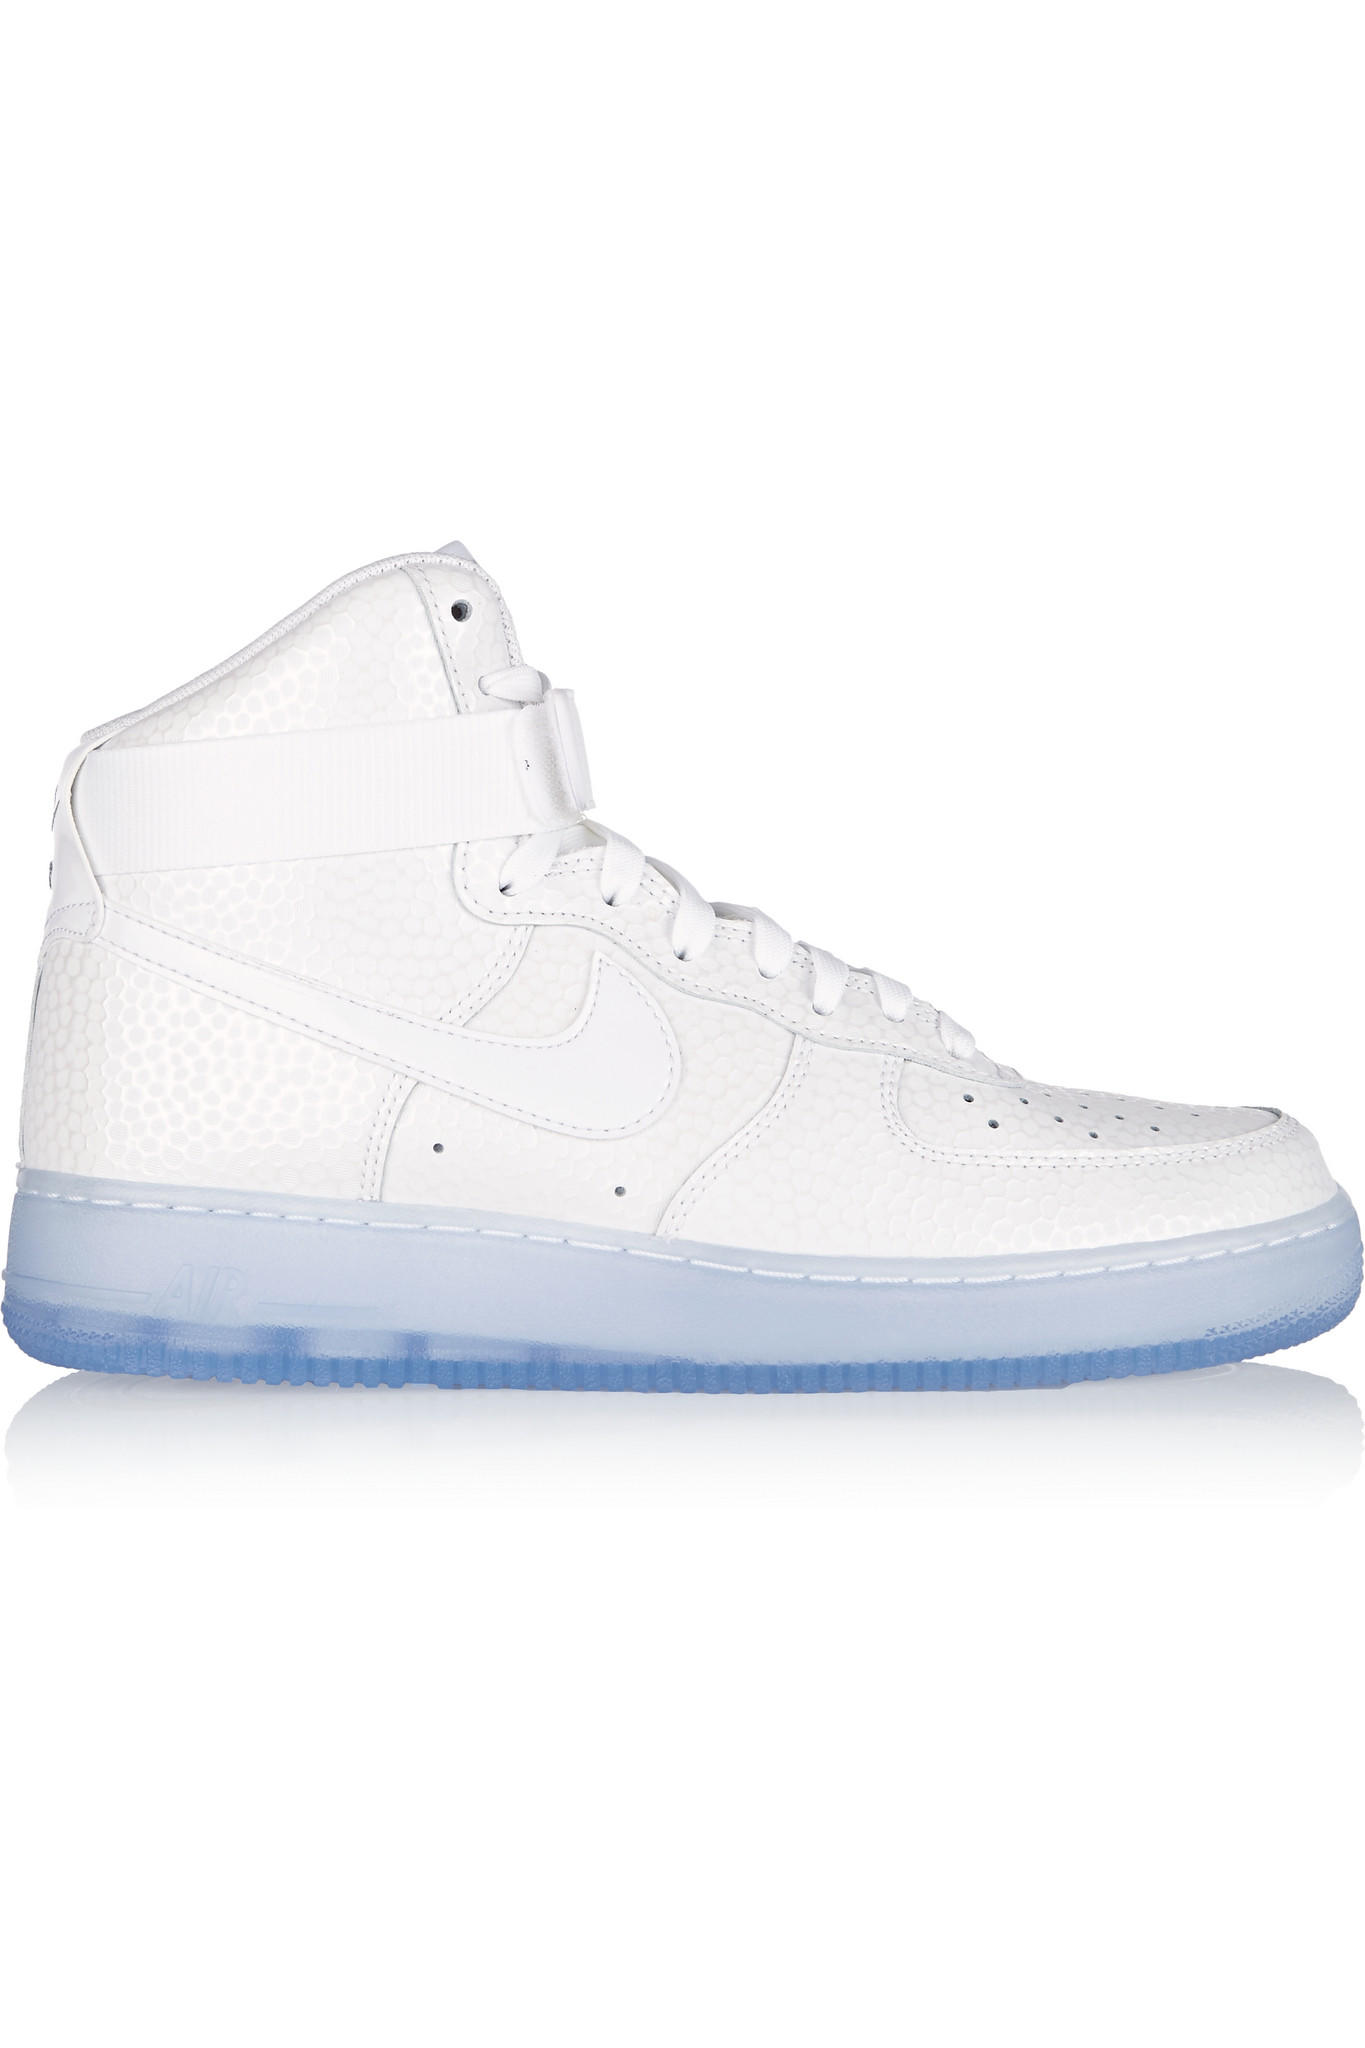 Nike - Air Force 1 Hi Premium from NET-A-PORTER b4202d2673